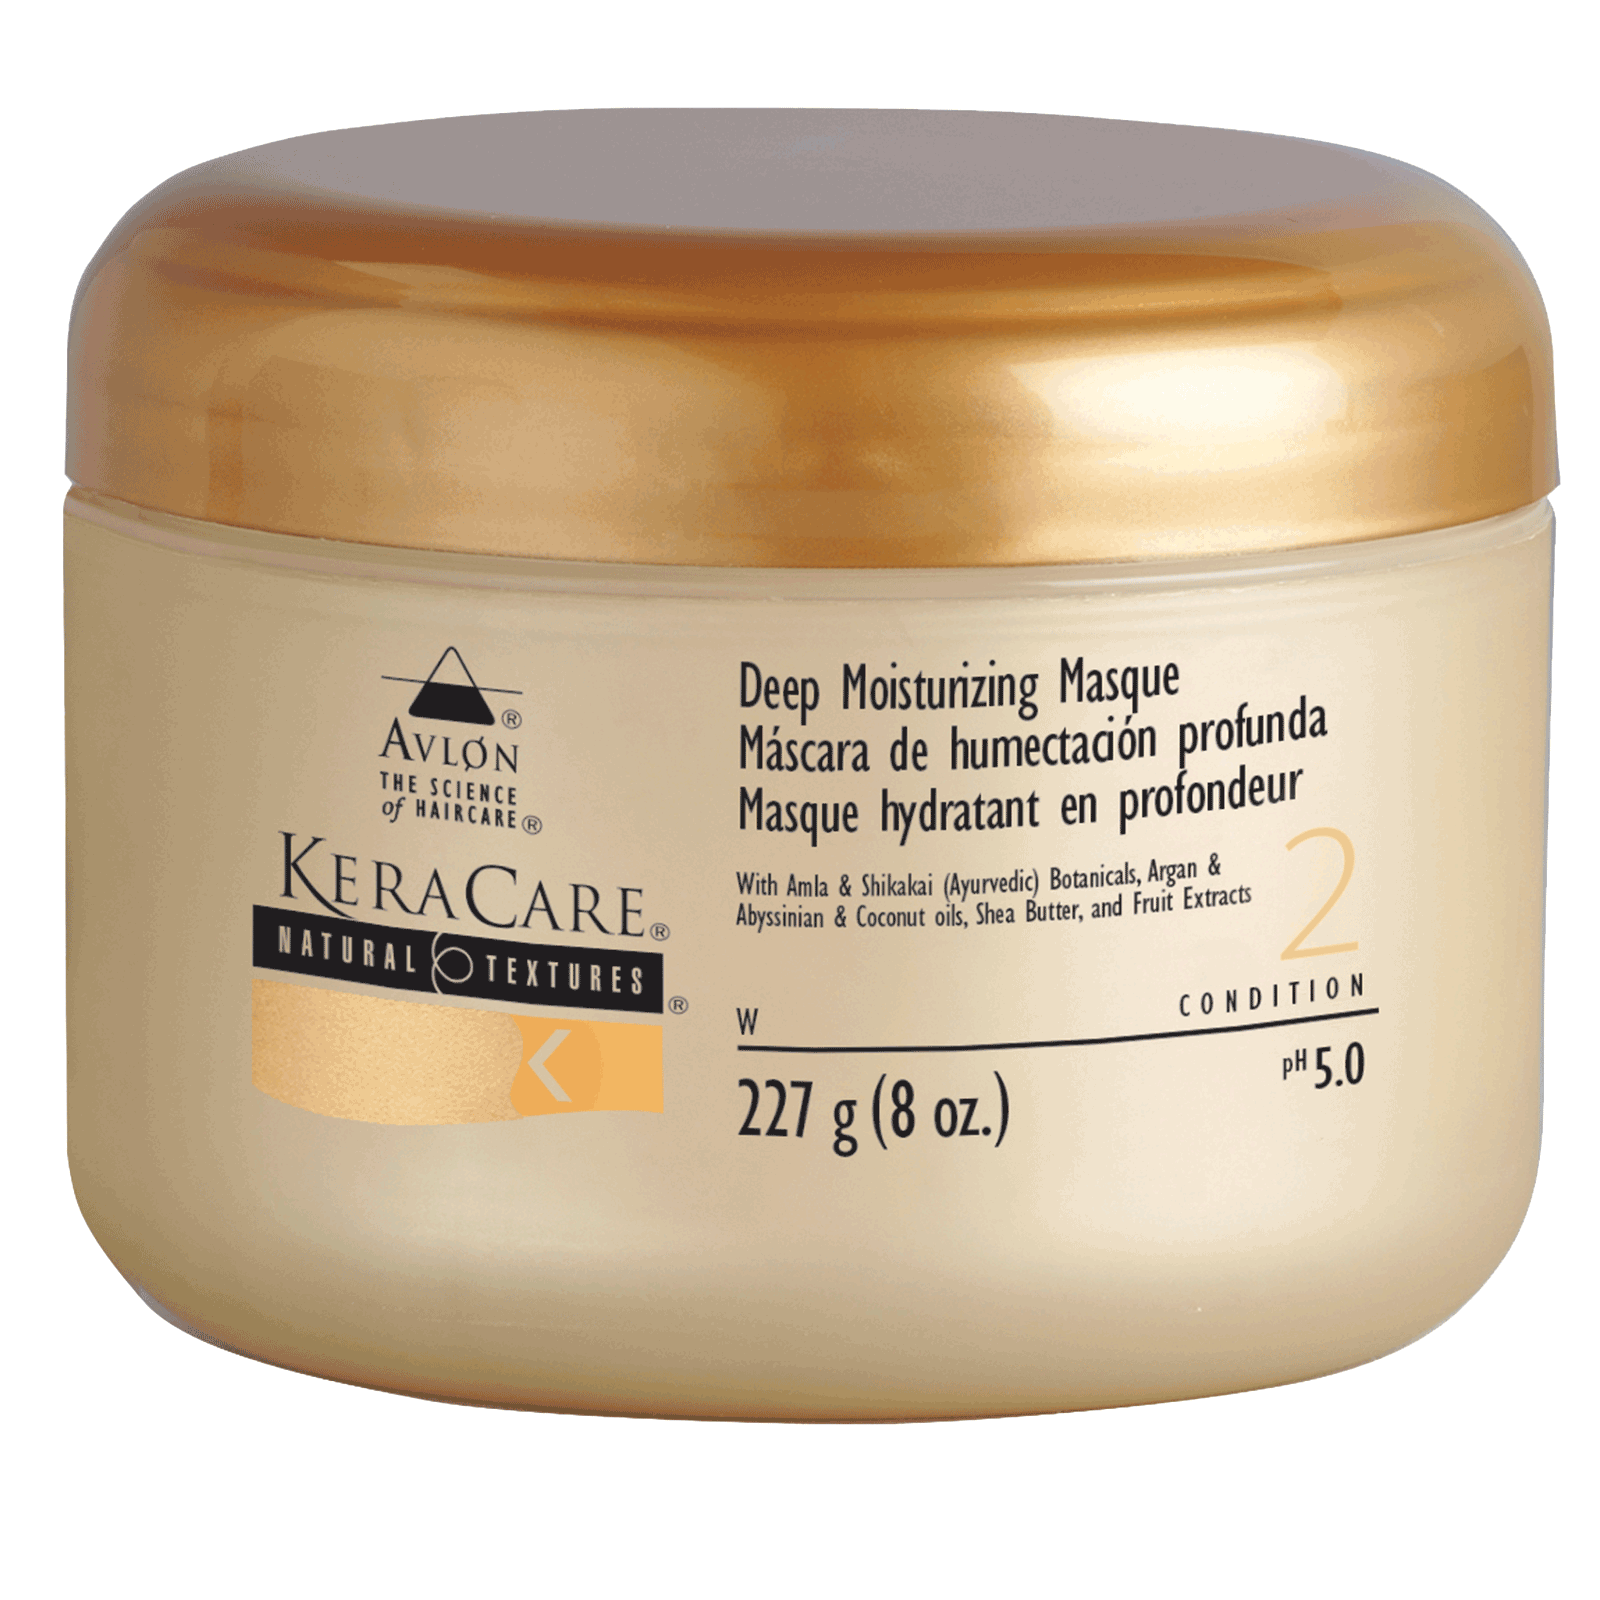 KeraCare Natural Texture® Deep Moisturizing Masque